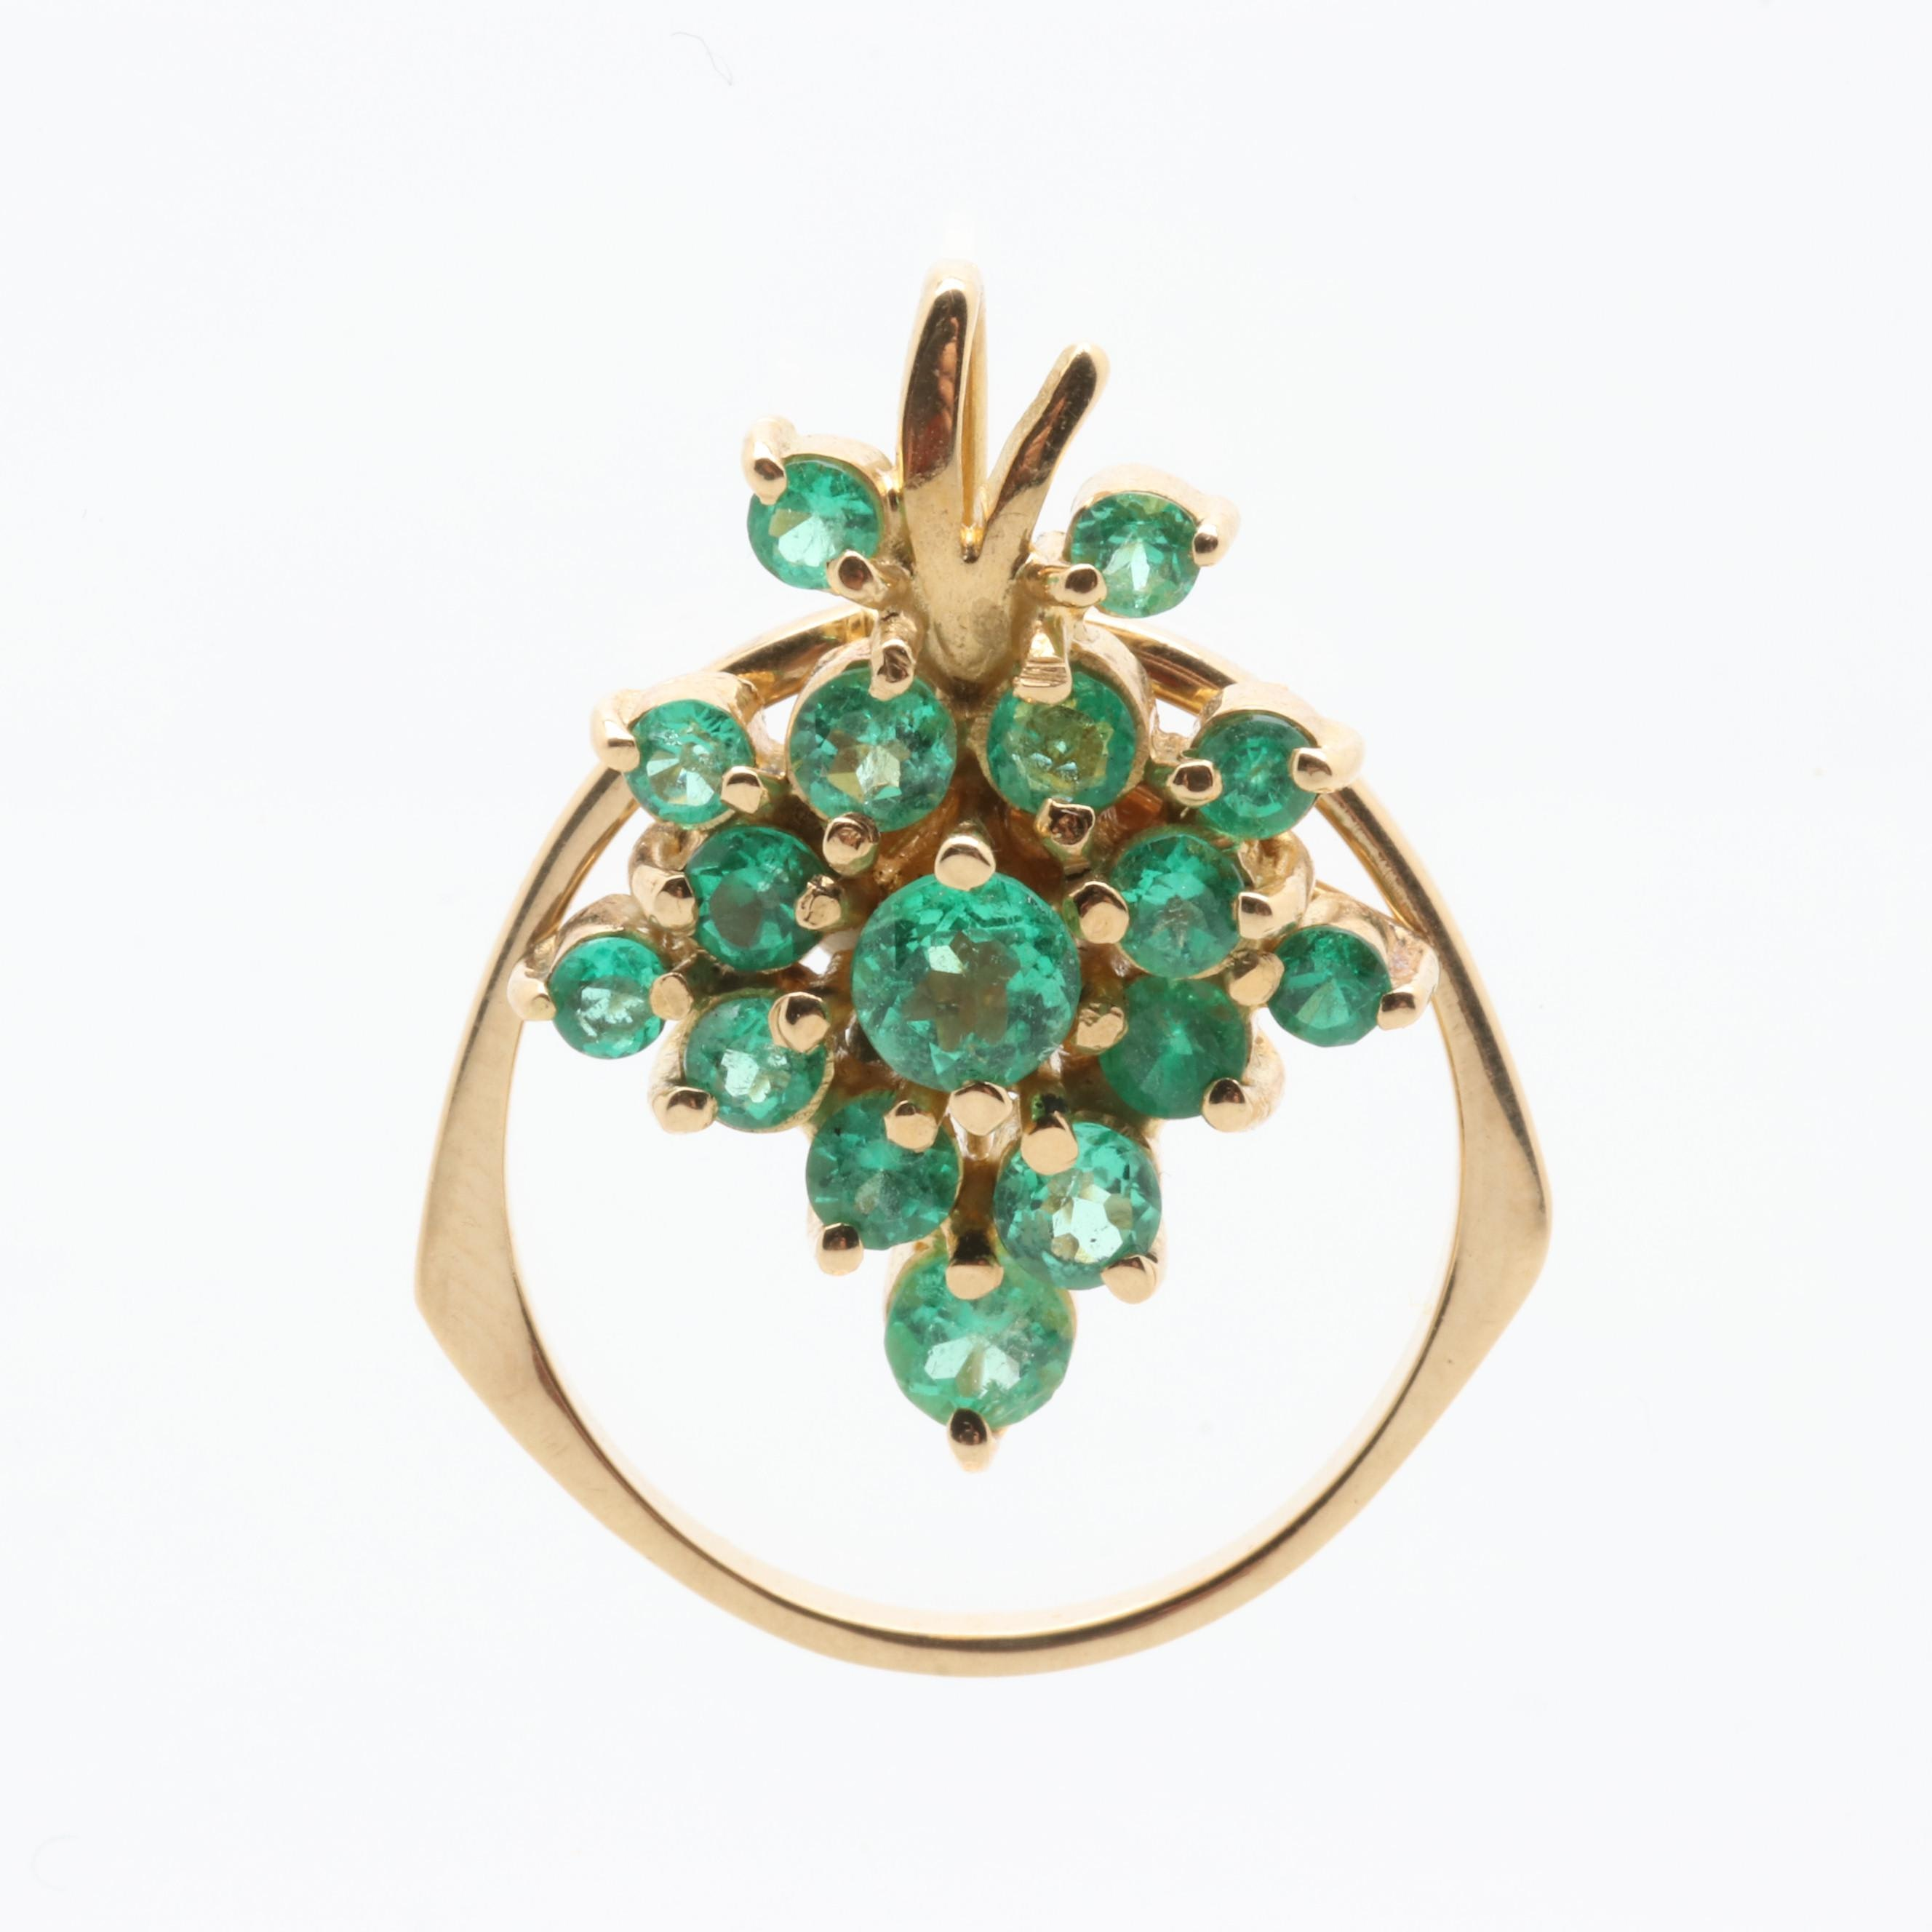 18K Yellow Gold Emerald and Diamond Converter Ring Pendant